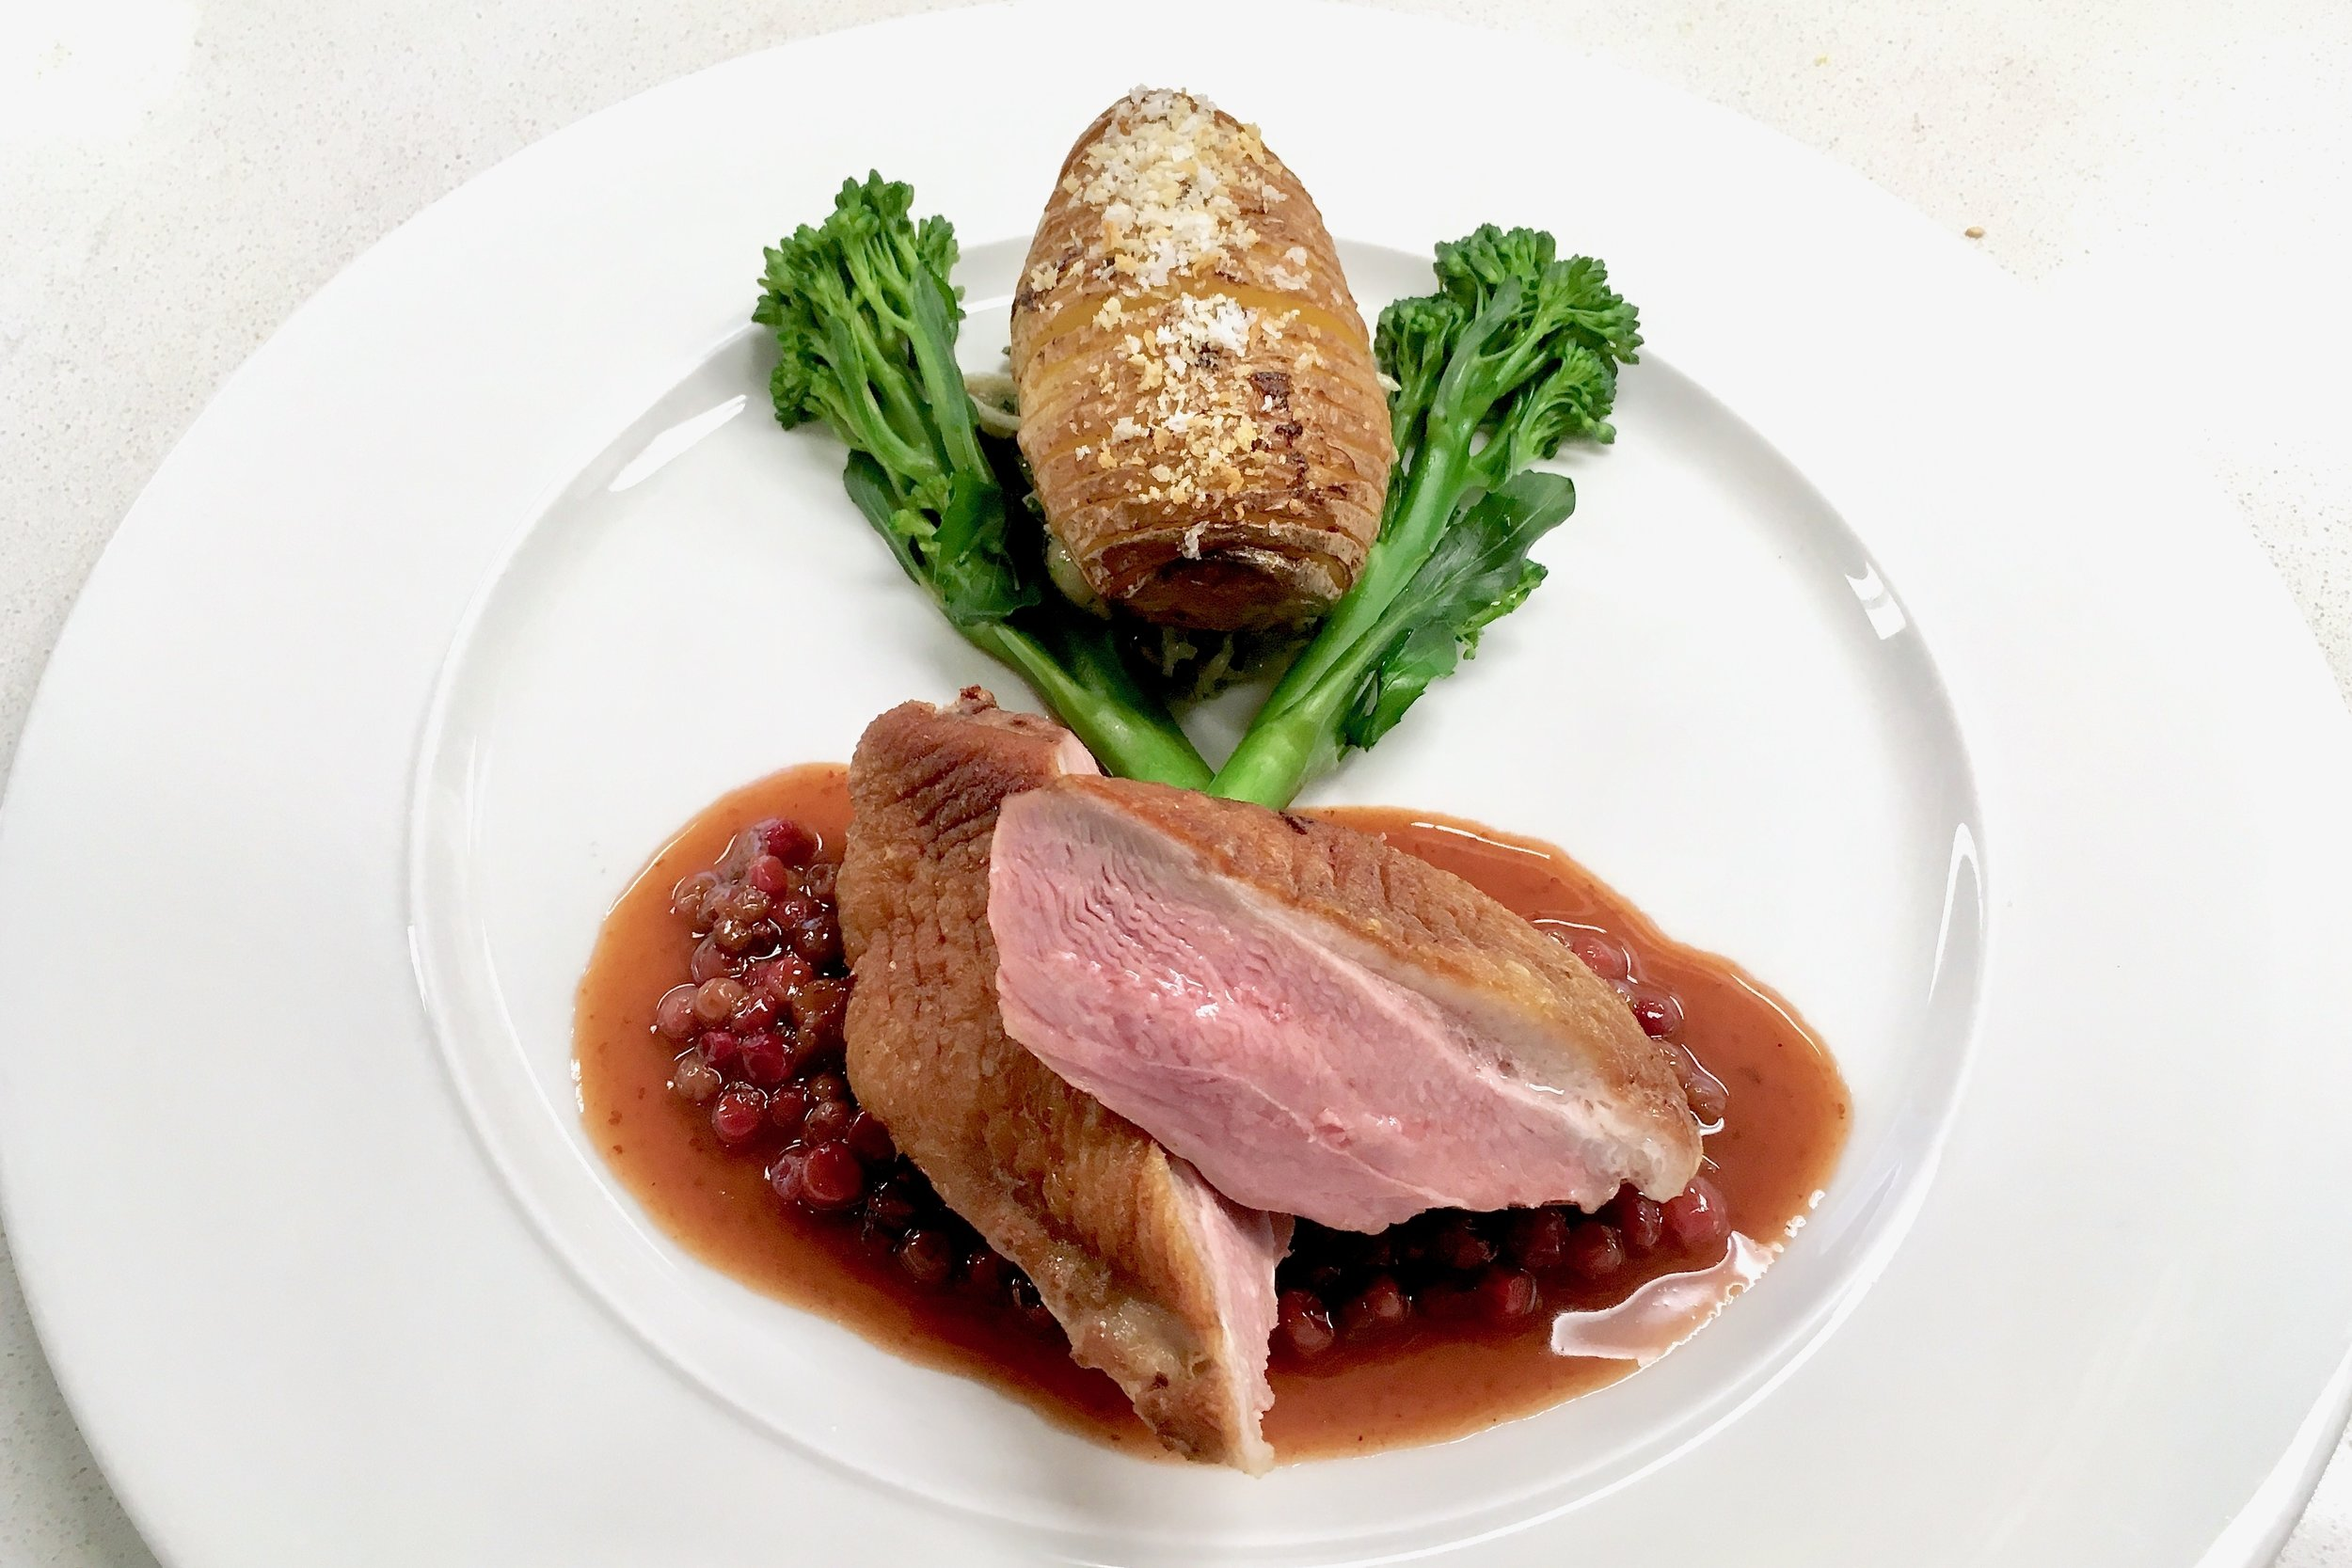 Pan-fried duck breast with lingonberries and wild mushrooms